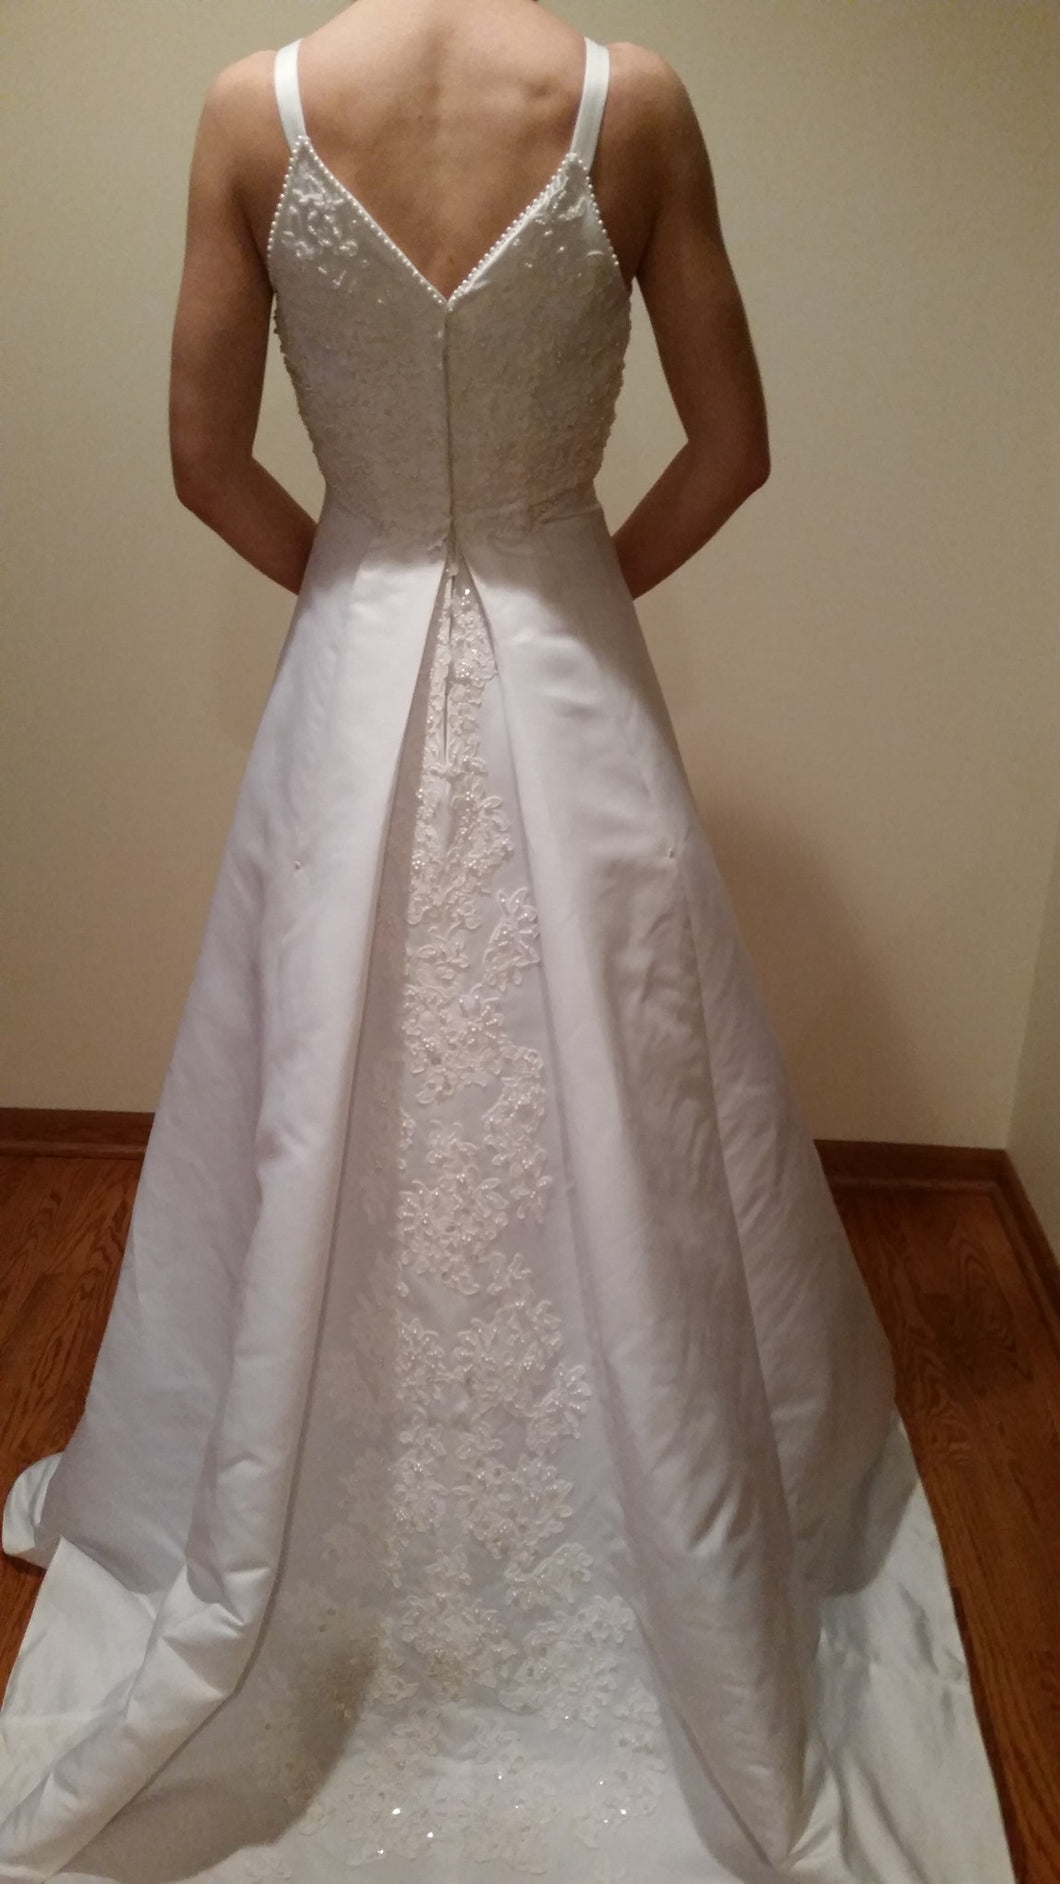 Alfred Angelo 'Satin' - alfred angelo - Nearly Newlywed Bridal Boutique - 1